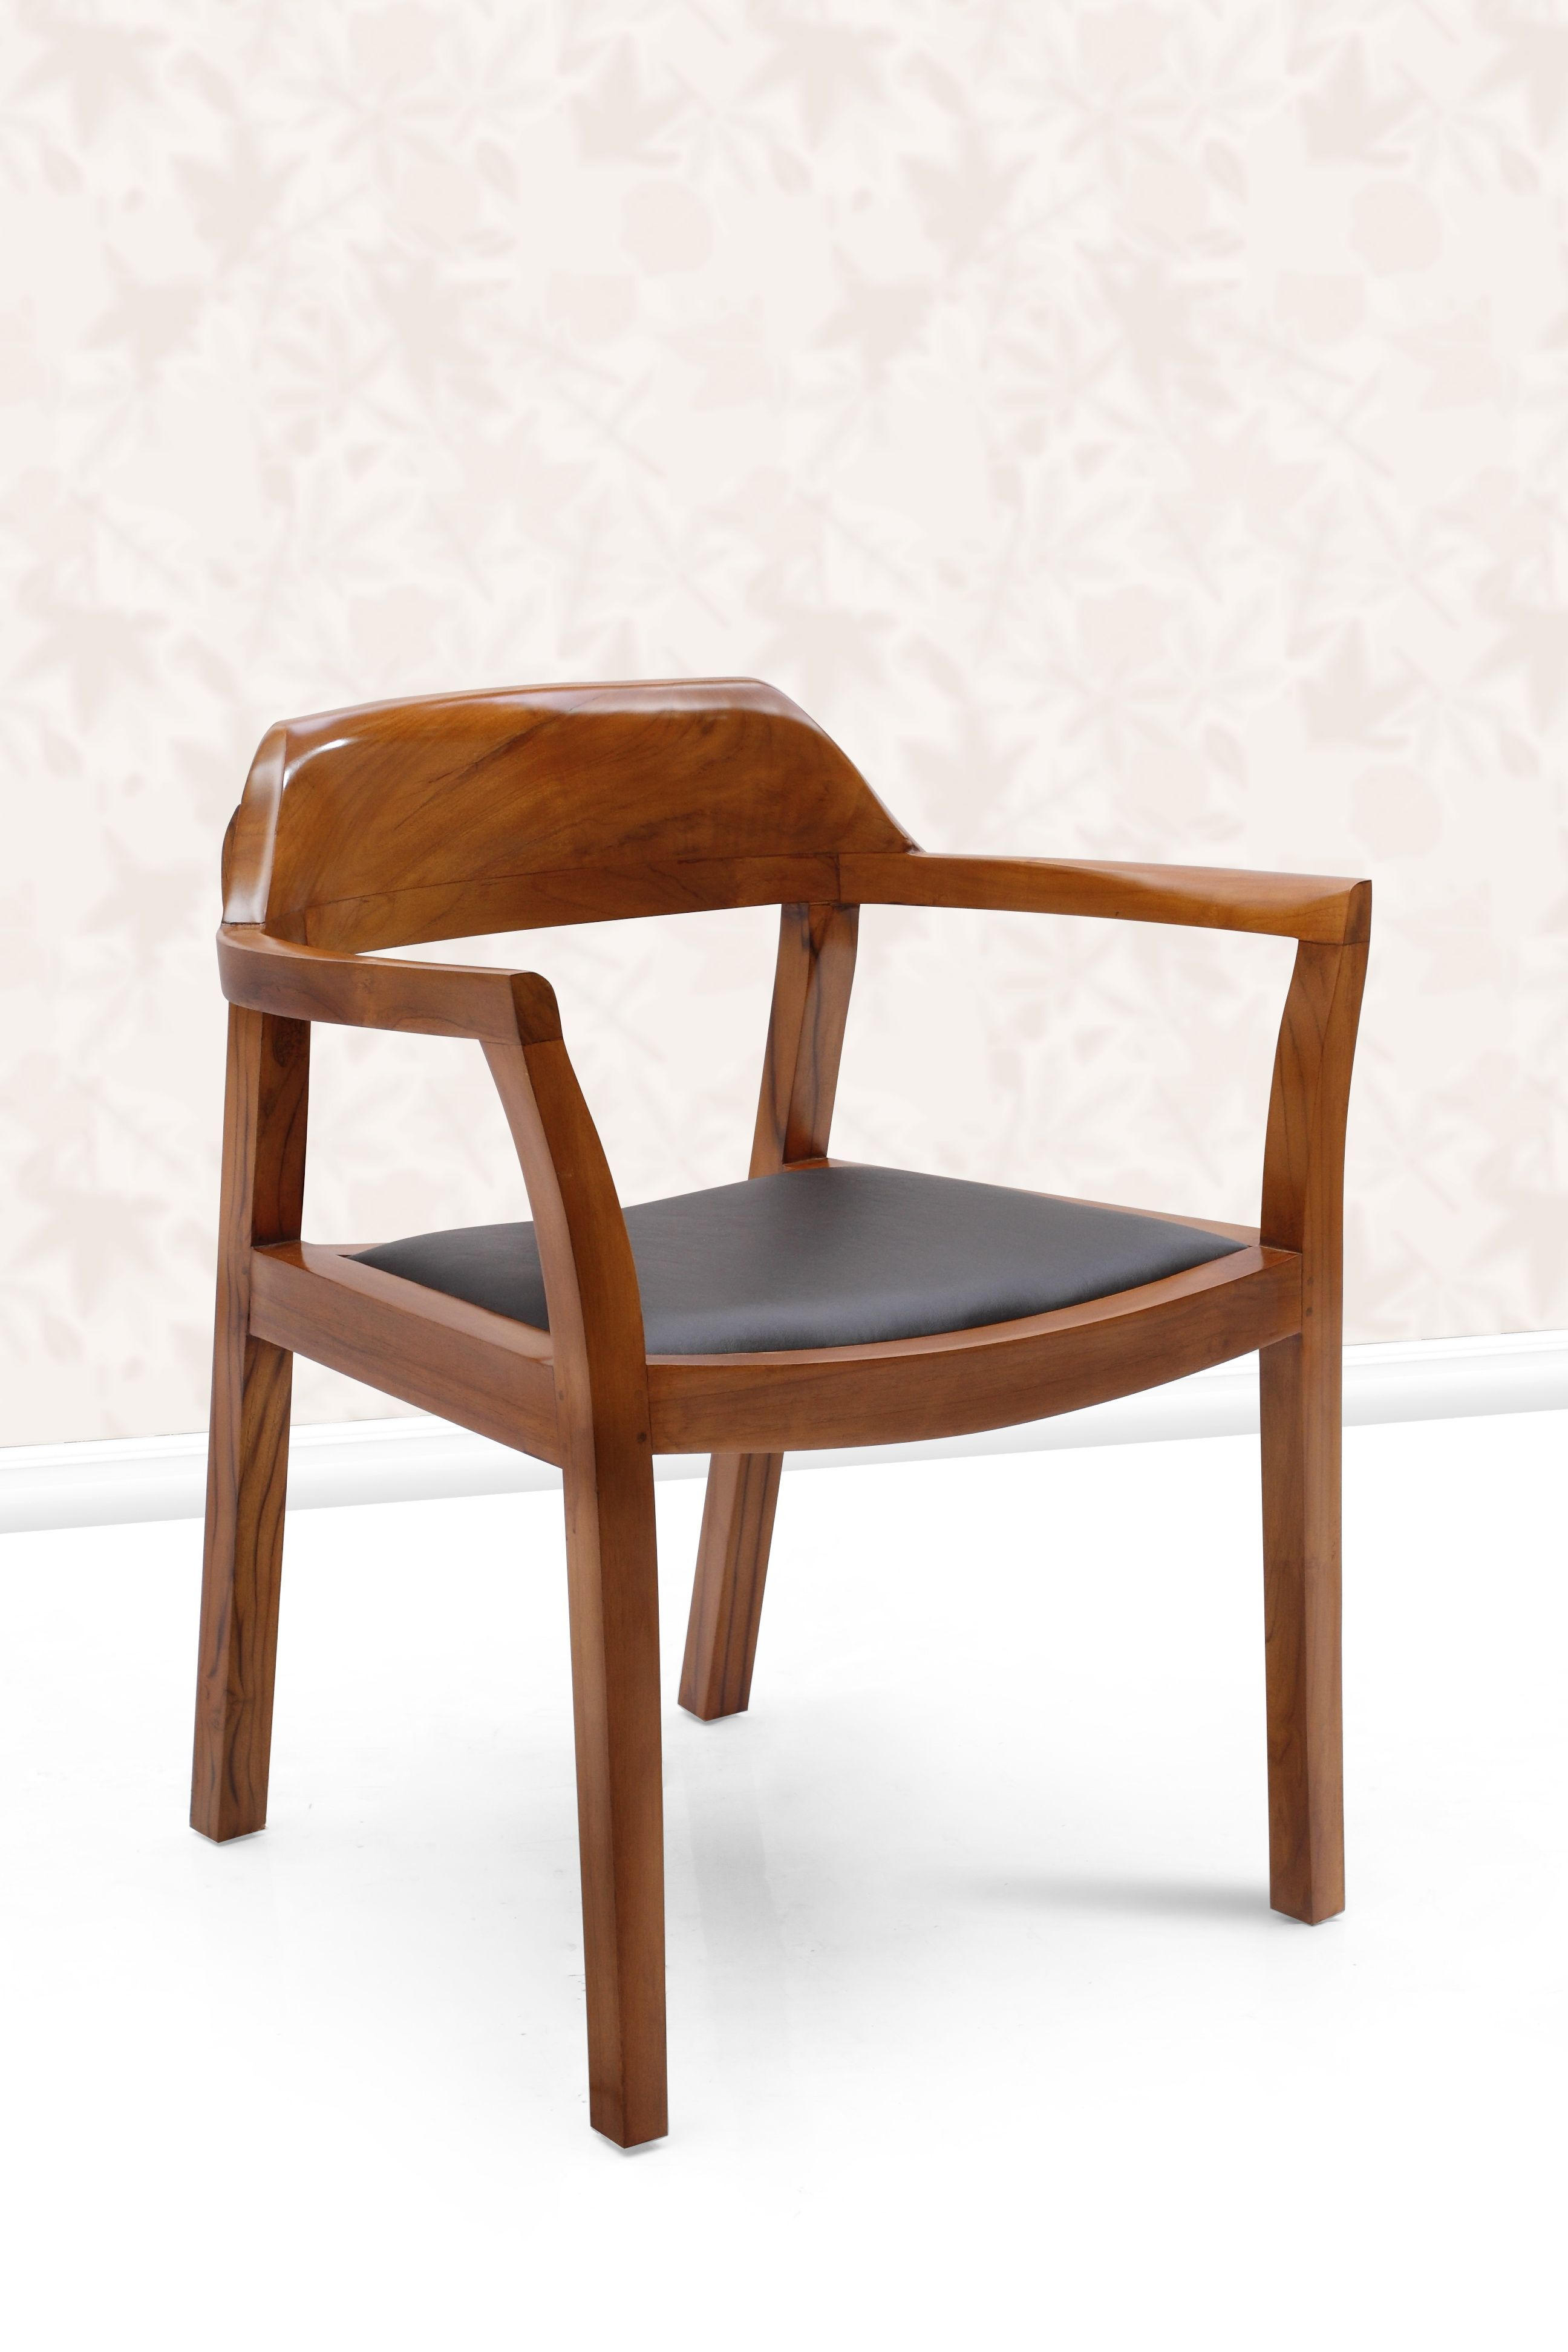 Teak Wood Dining Chair With Leather Seat Available At Casateak Malaysia Teakwood Diningchairs Teakwoodchairs Teakfurniture Woodfurniture